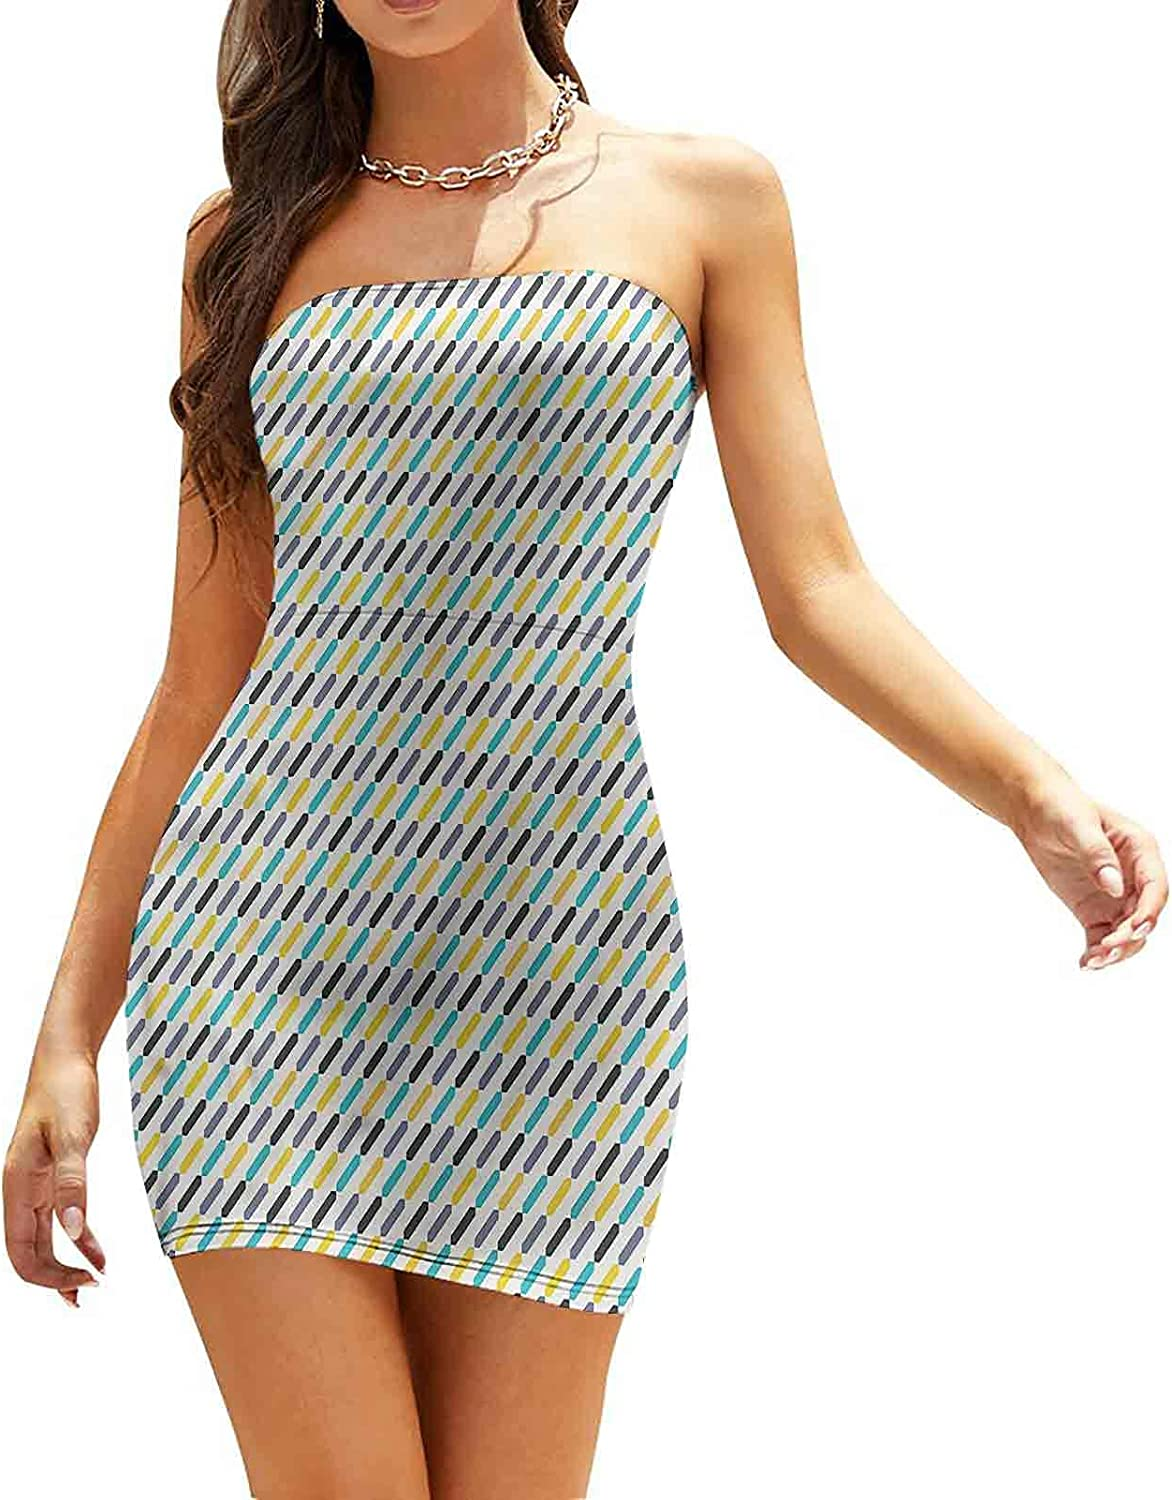 Women's Sleeveless Sexy Tube Top Dress Colorful Geometrical Ombre Dresses